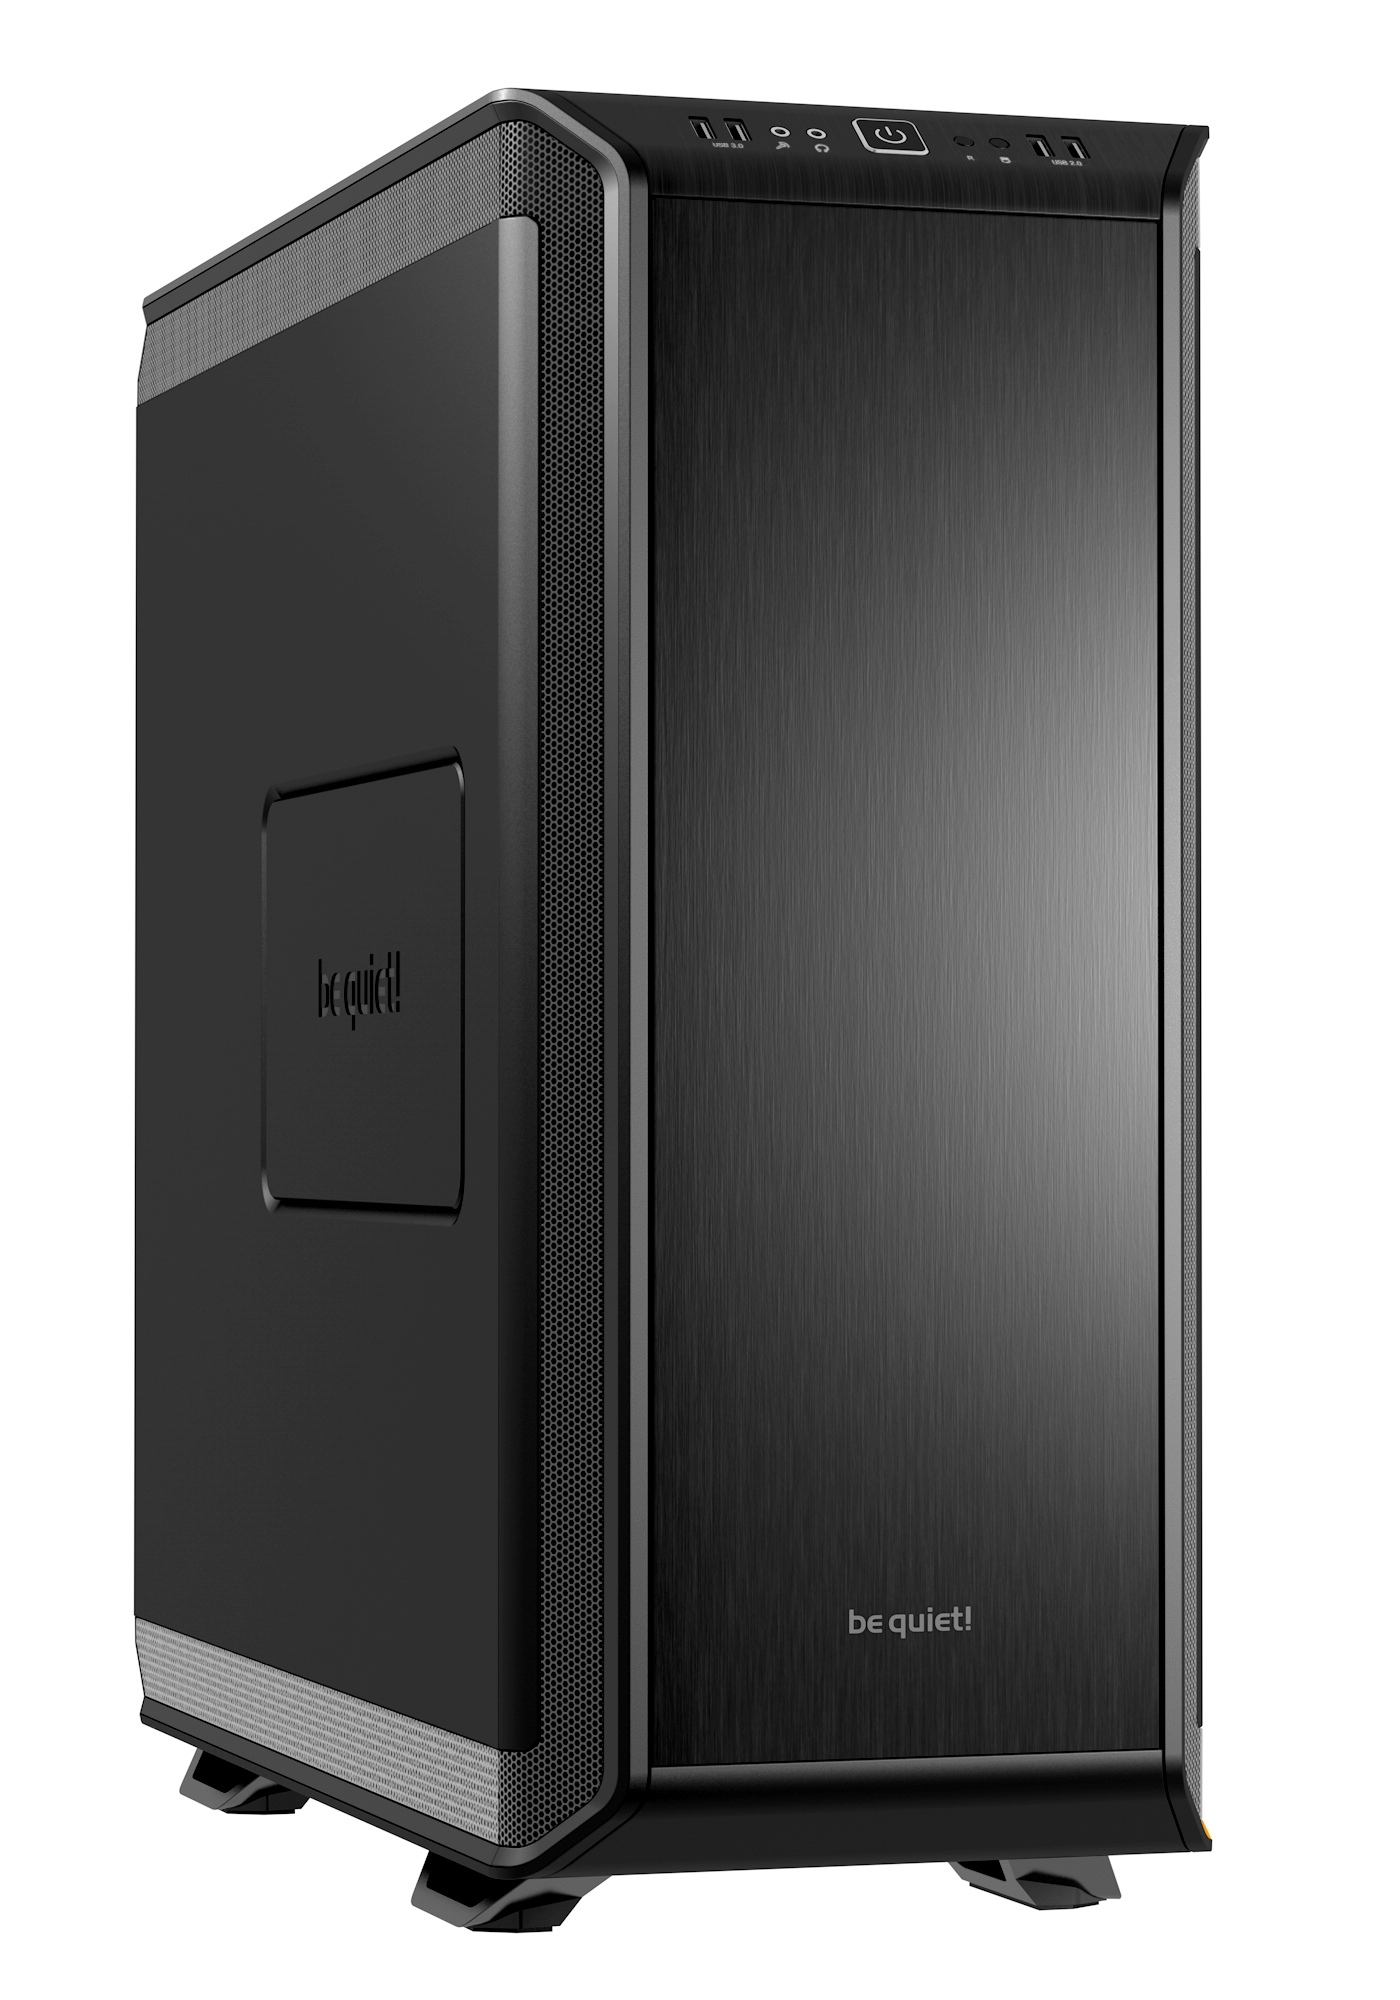 BE QUIET! BG011 DARK BASE 900 DESKTOP BLACK COMPUTER CASE